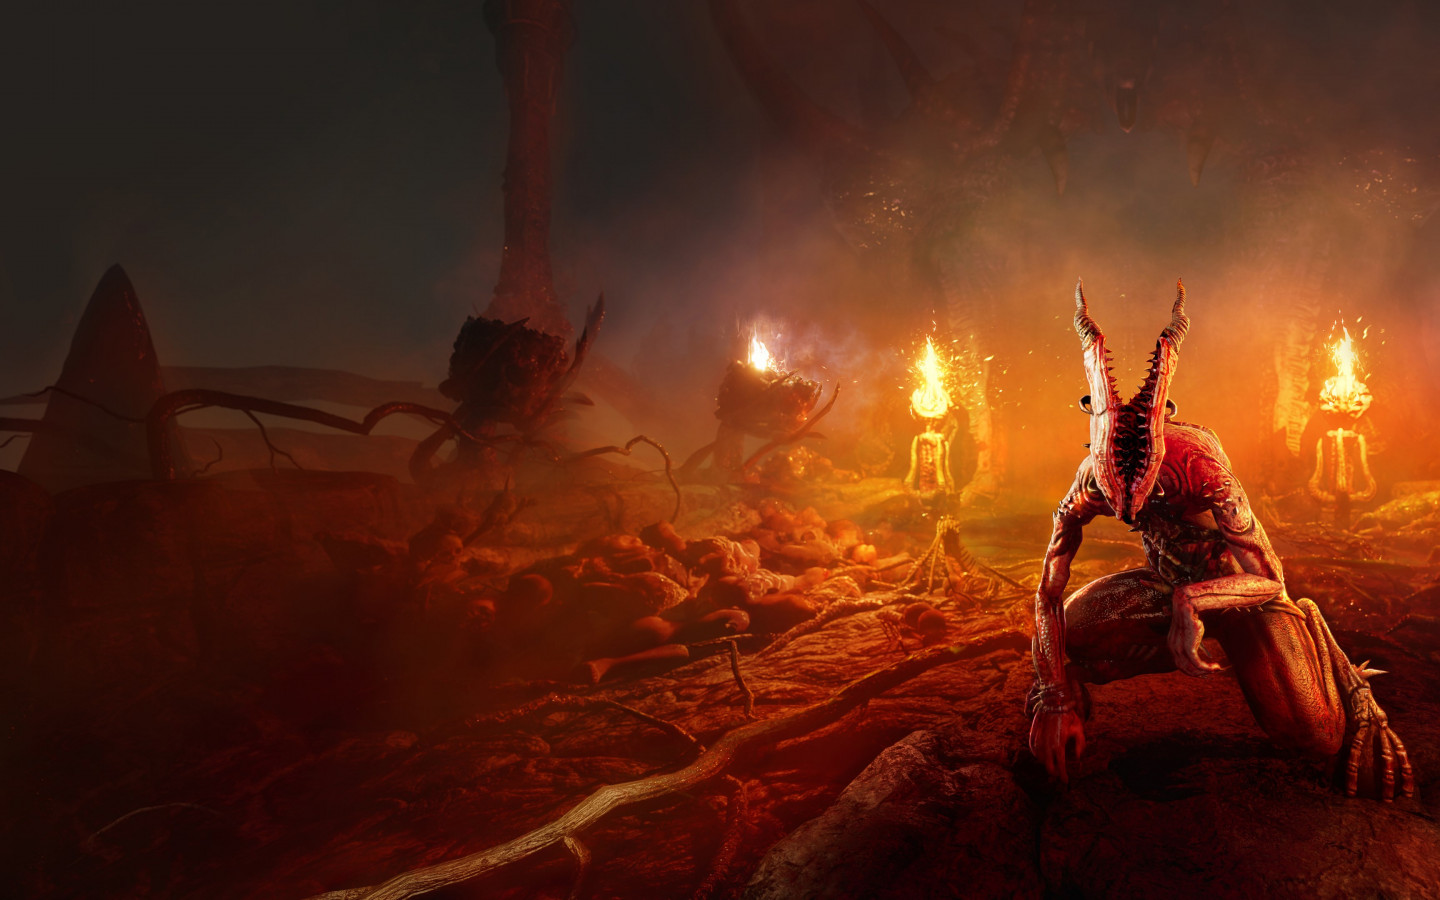 Agony, the video game wallpaper 1440x900